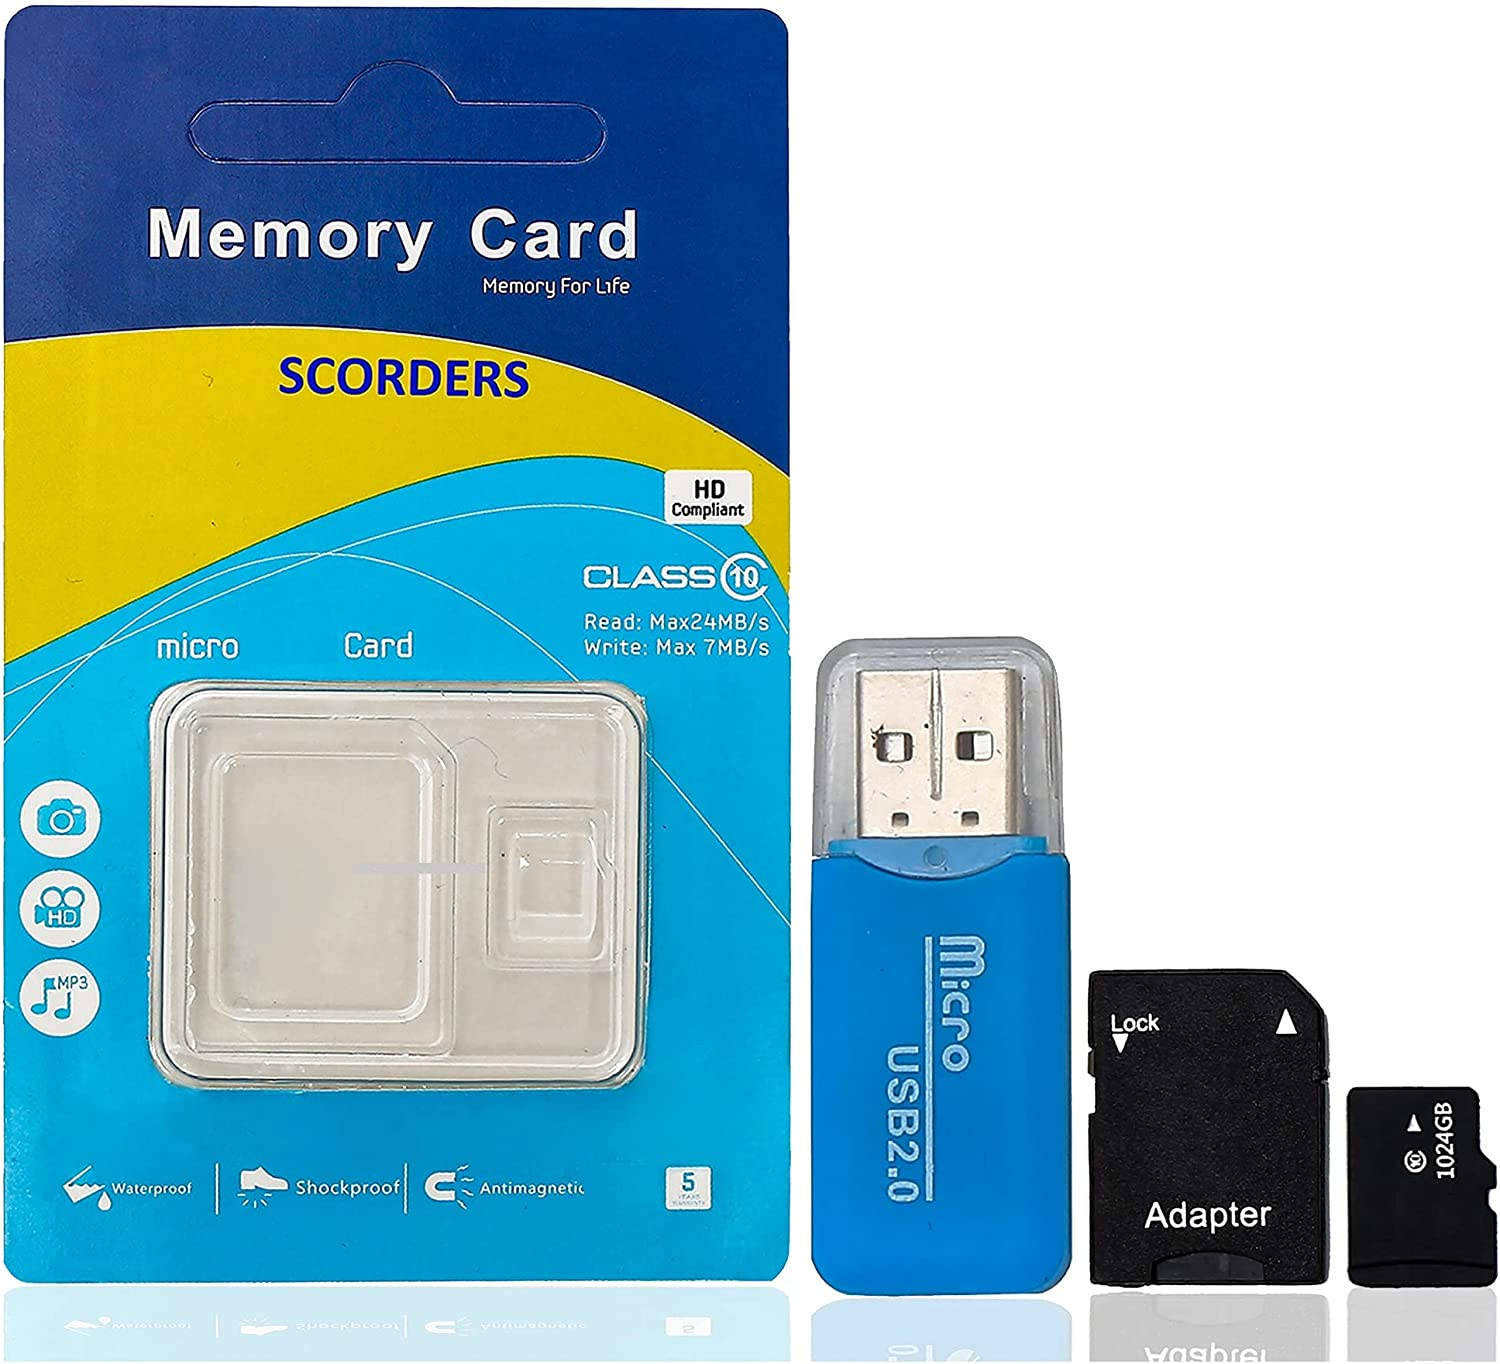 sd Card 1 Tb | USB Adapter | sd Card Adapter | Pack of 3 | 10MB/s Transfer Rate | Plug and Play | All OS Compatible | Reliable and Stable Products | Large Storage Capacity